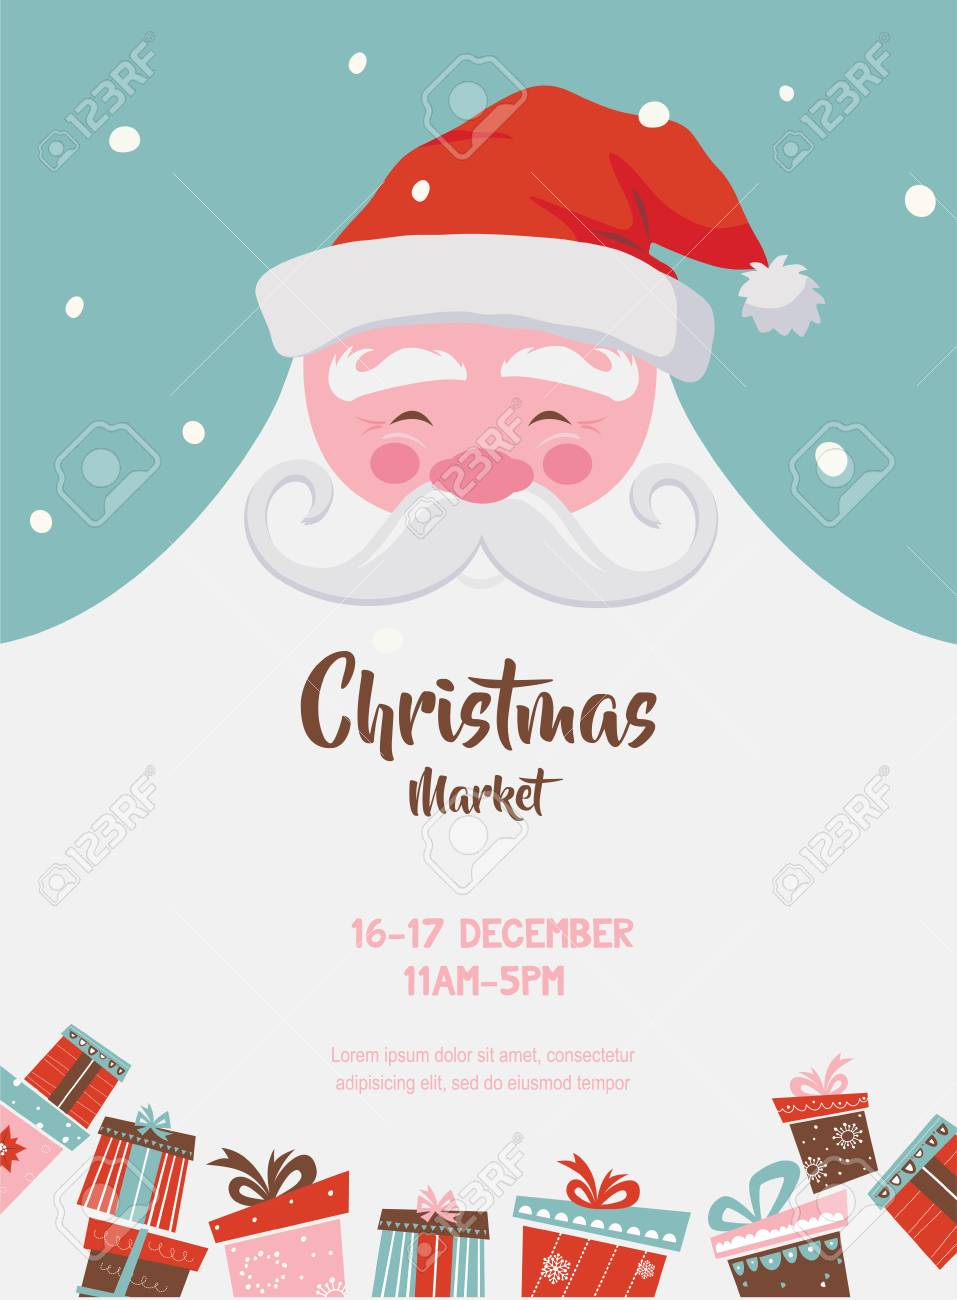 cbf2ace20e christmas market poster with santa and presents. vector illustration Stock  Vector - 88539544